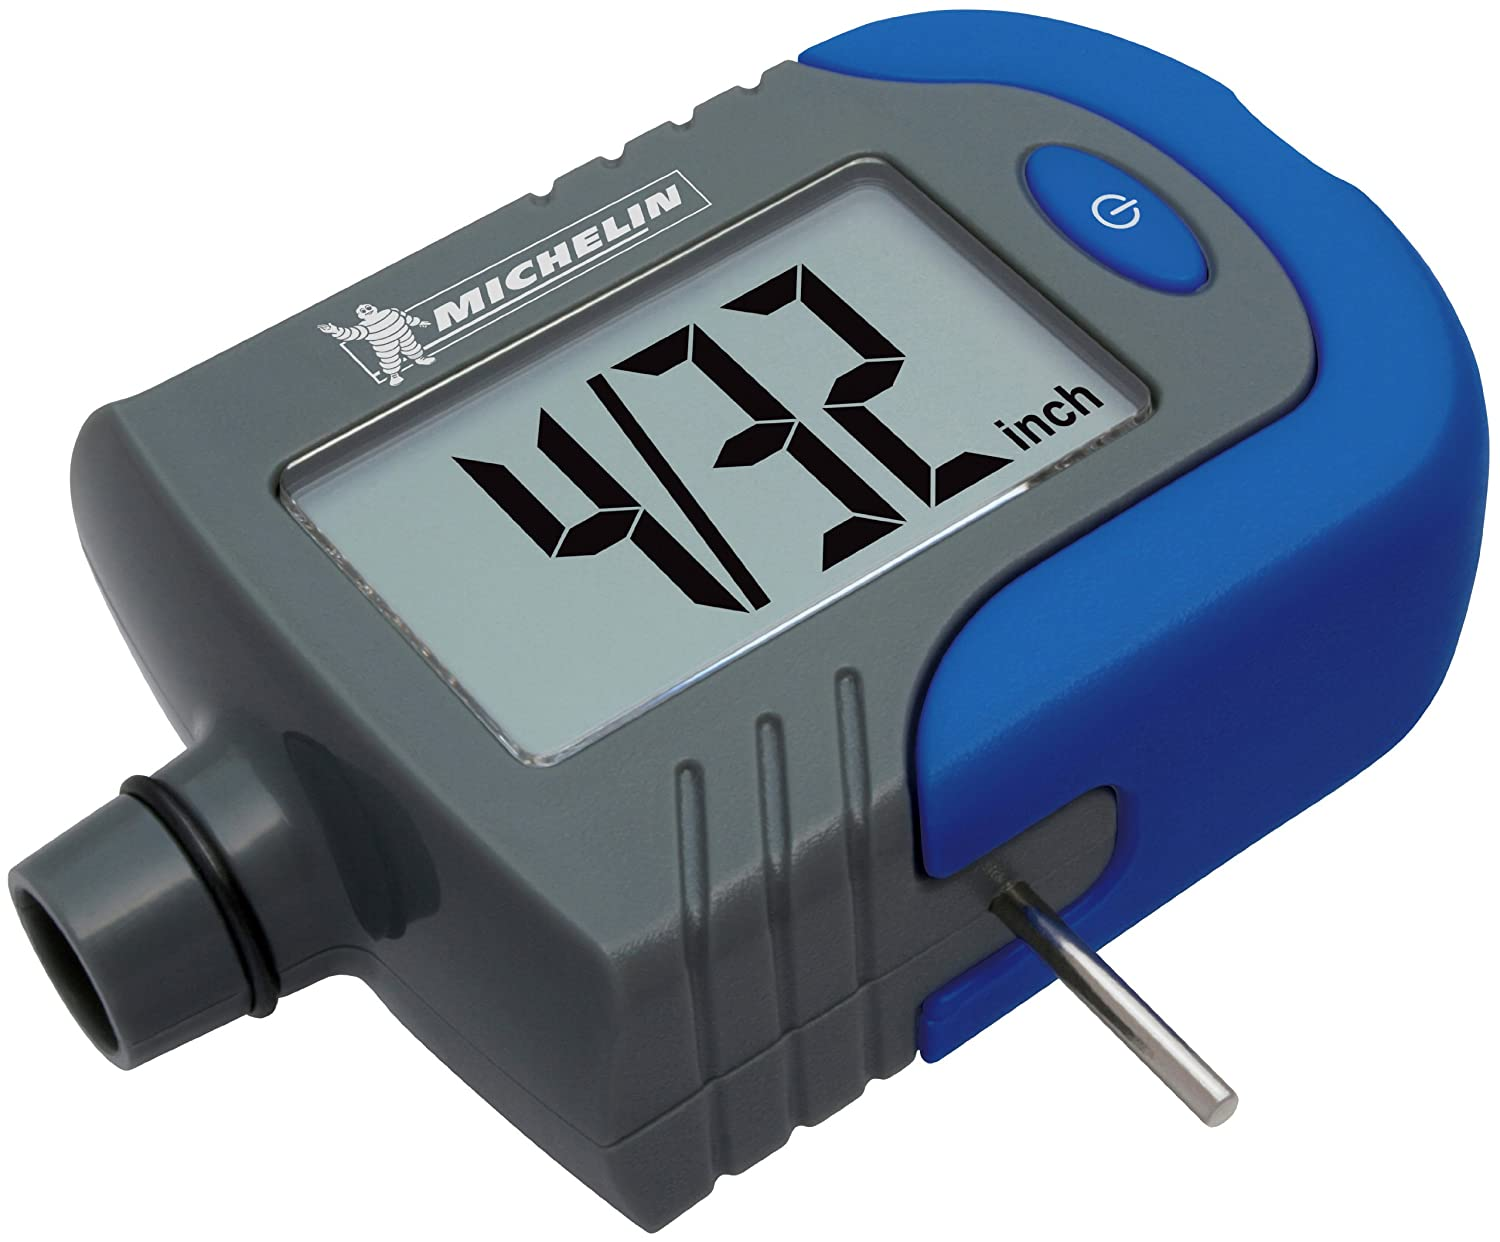 Measurement Limited Michelin MN-4203B Digital Tire Gauge with Tread Depth Indicator